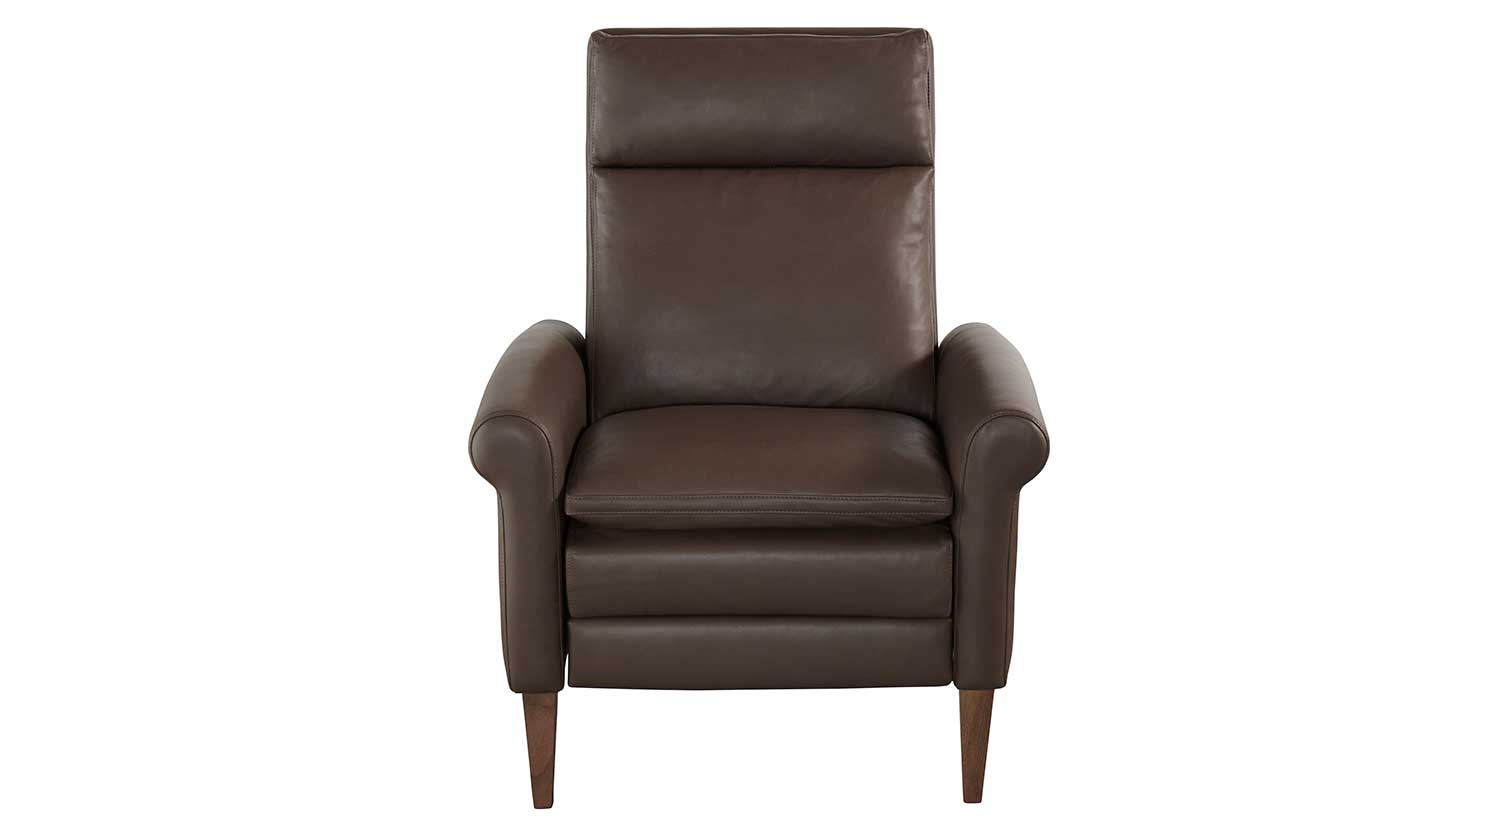 american leather chairs and recliners chaise lounge at target circle furniture burke recliner